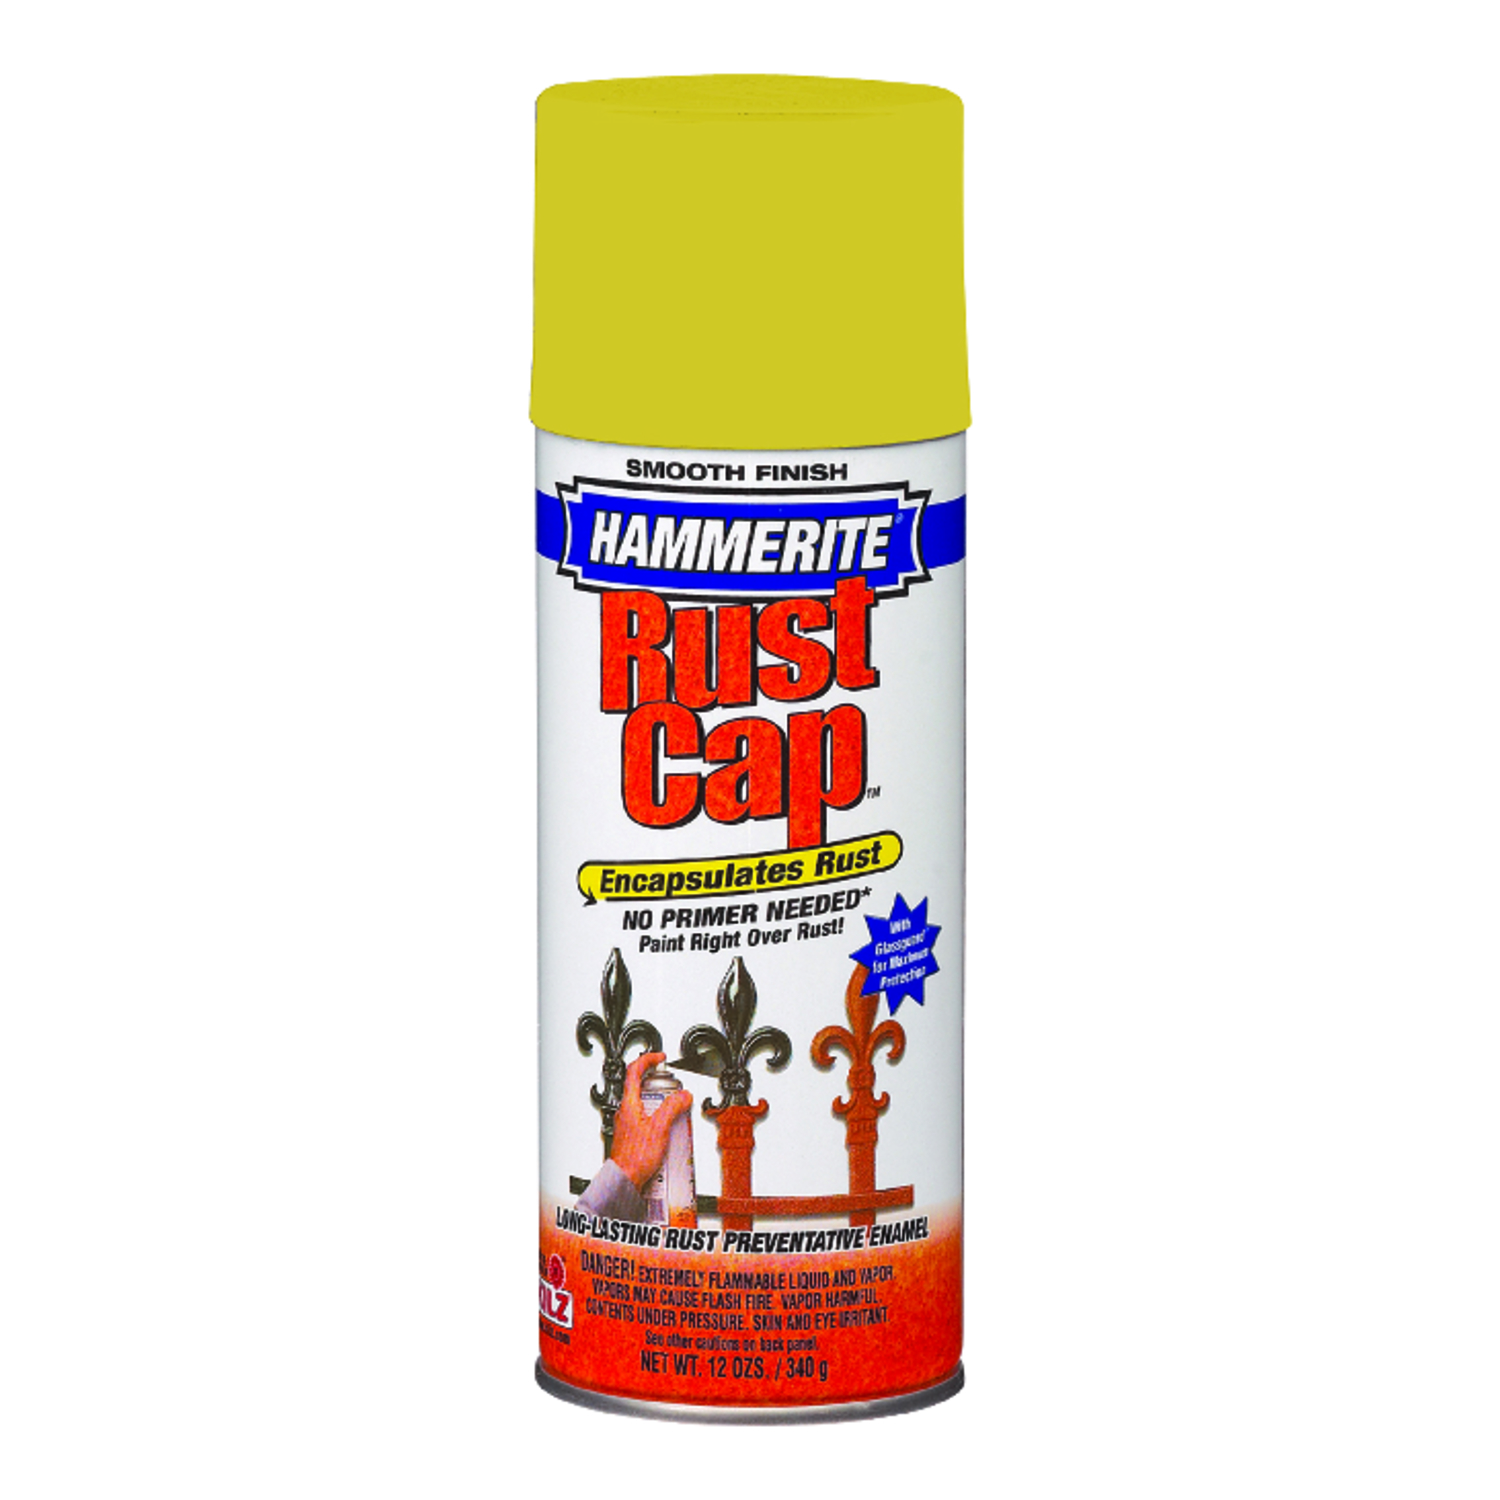 Hammerite  Rust Cap  Bright Yellow  Smooth Enamel Finish Spray  12 oz.